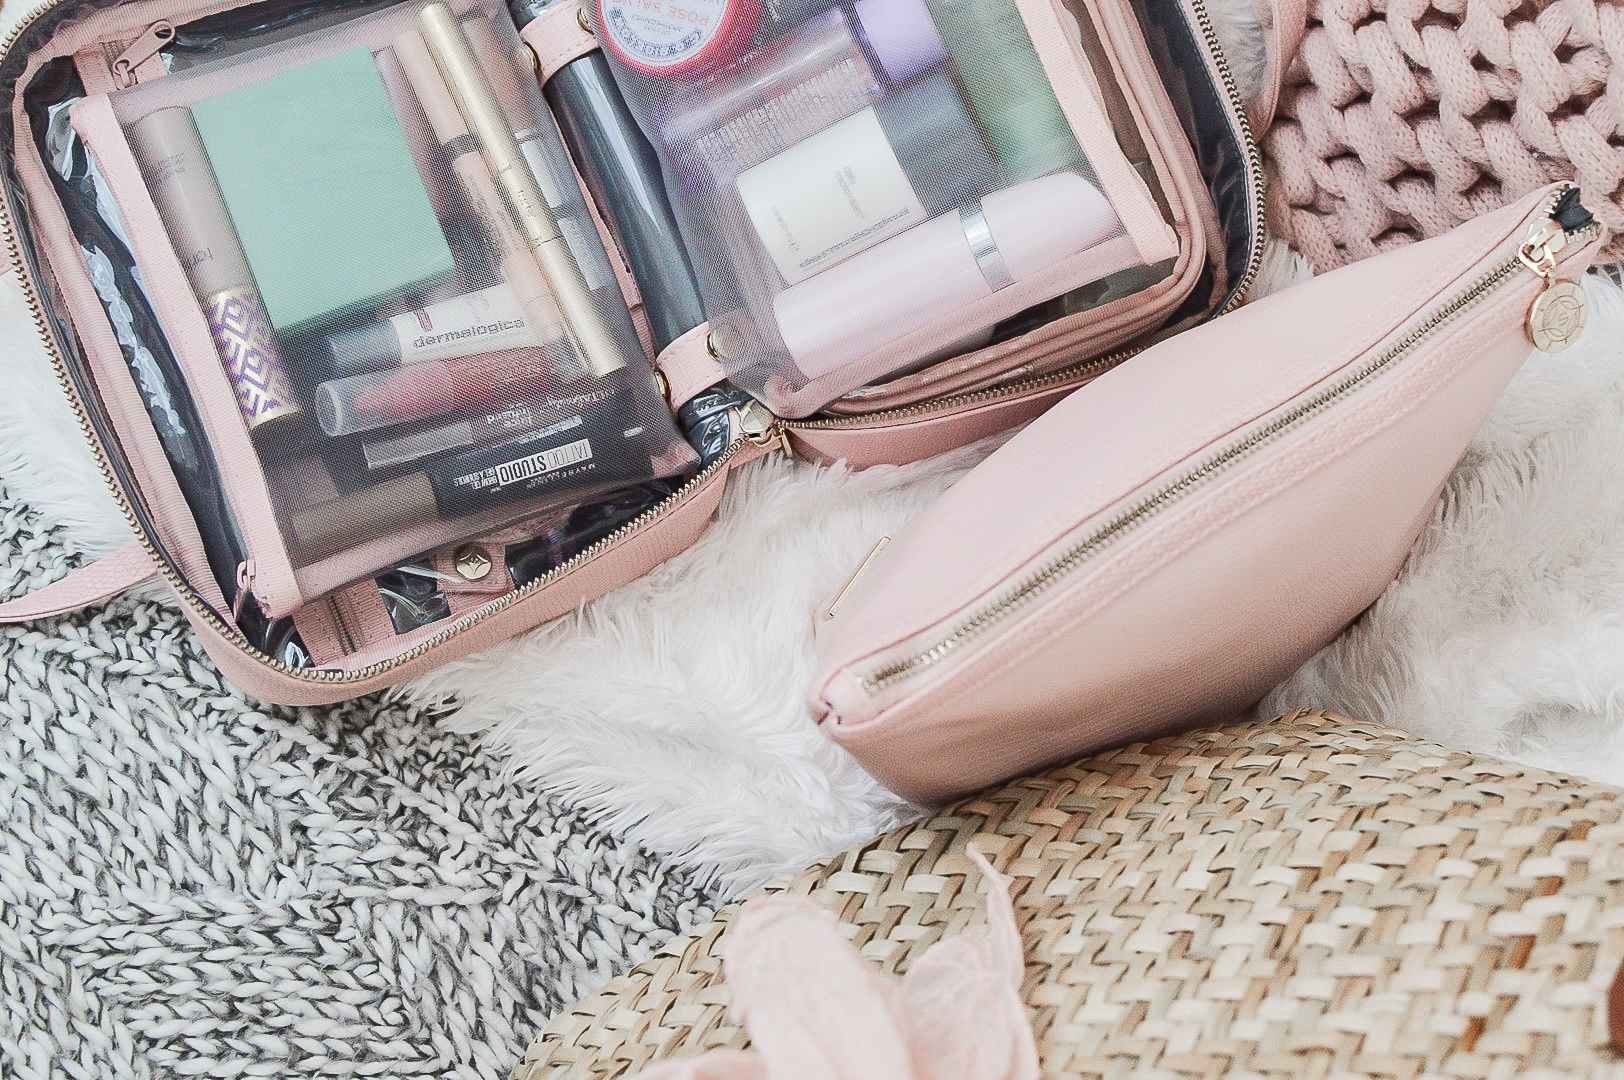 The Best Beauty Products for Travel